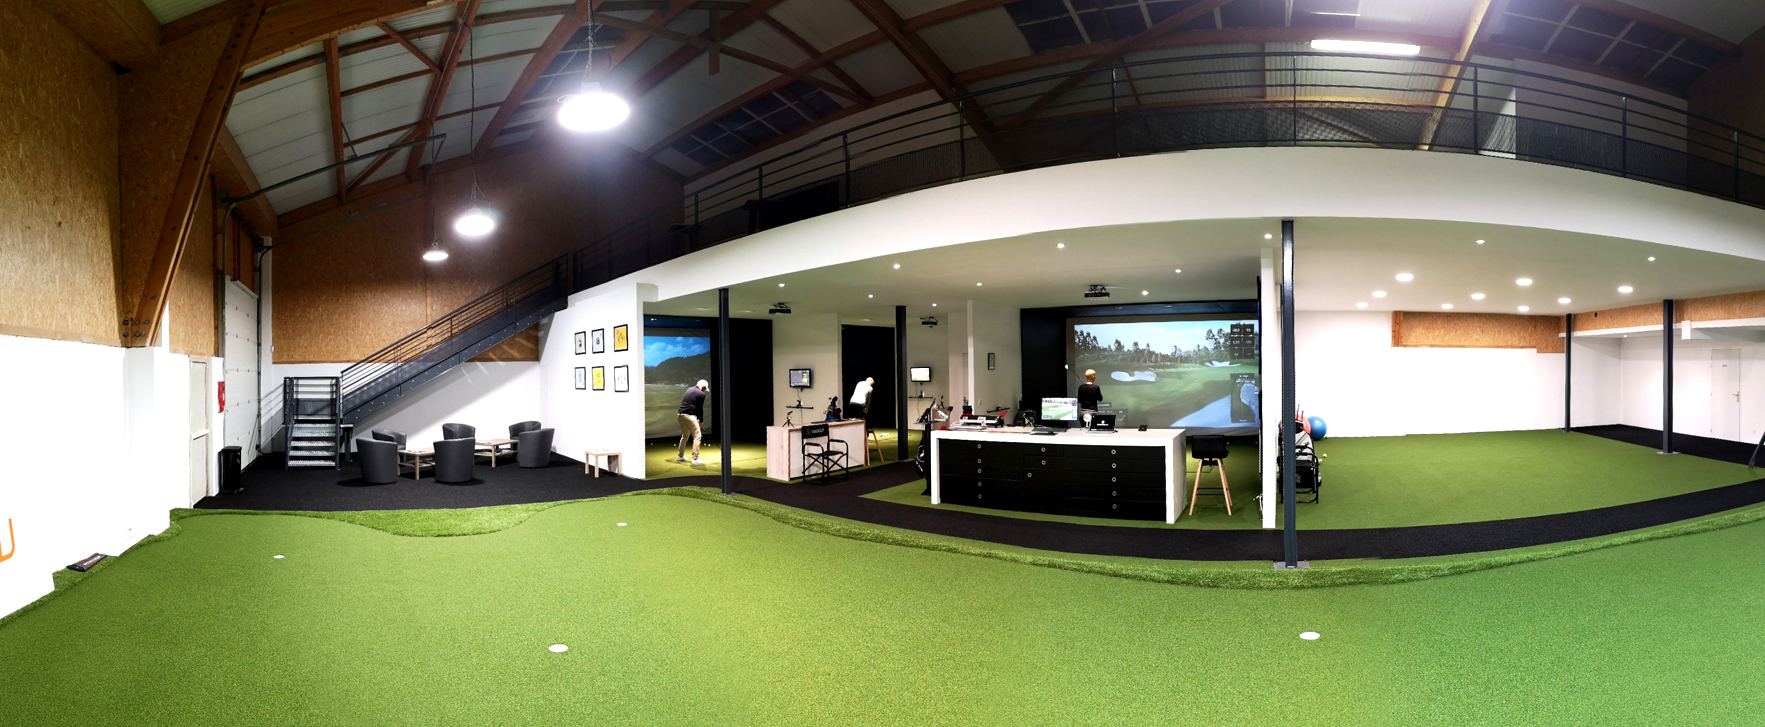 golfskills-center-paris-france-entrainement-golf-indoor